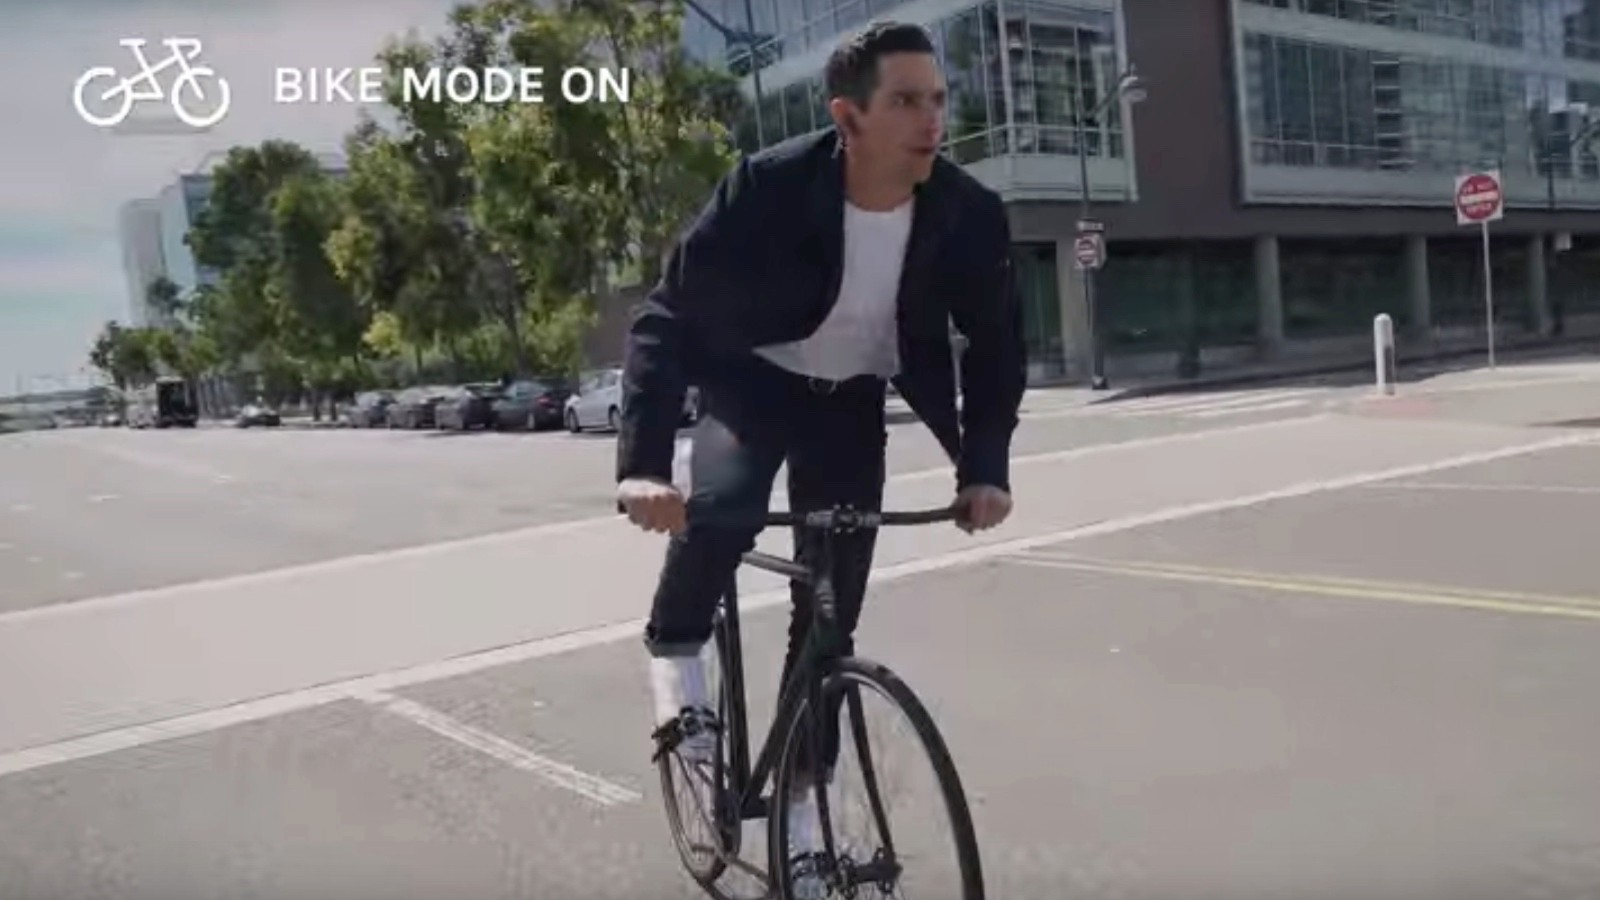 This could be the future of urban bike clothing, or at least a beta version